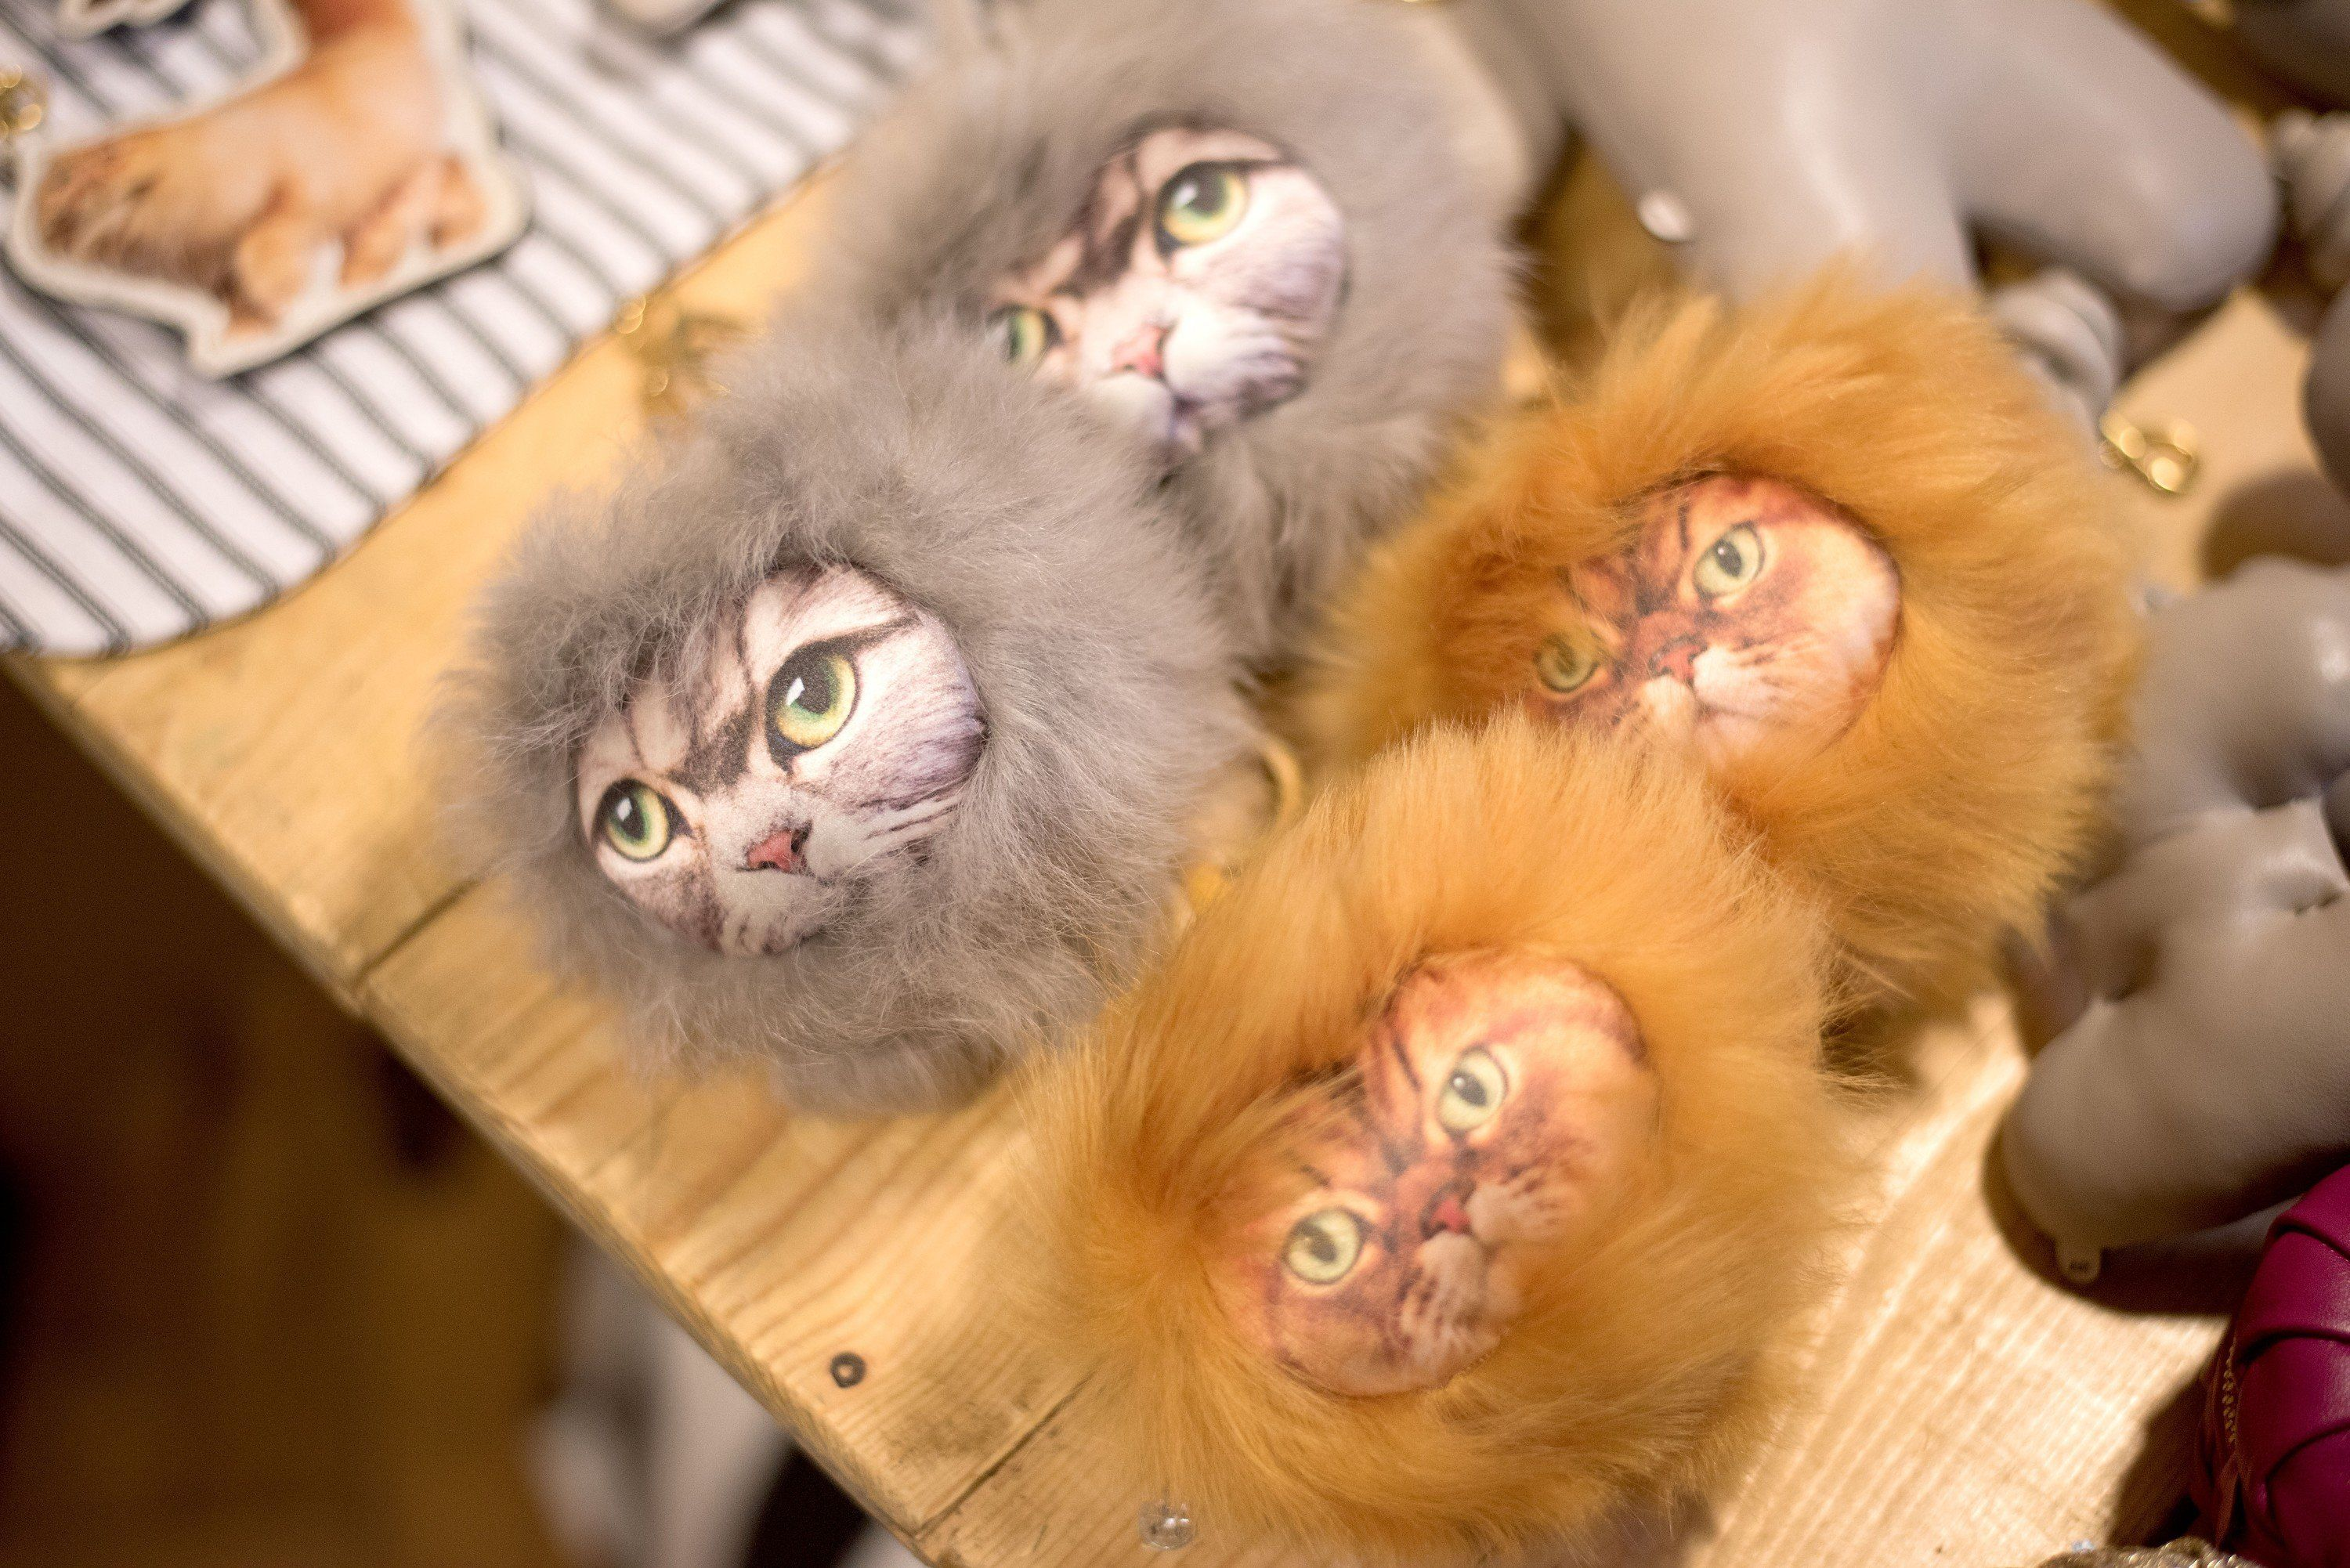 It's Cool To Be A Cat Lady According To London Fashion